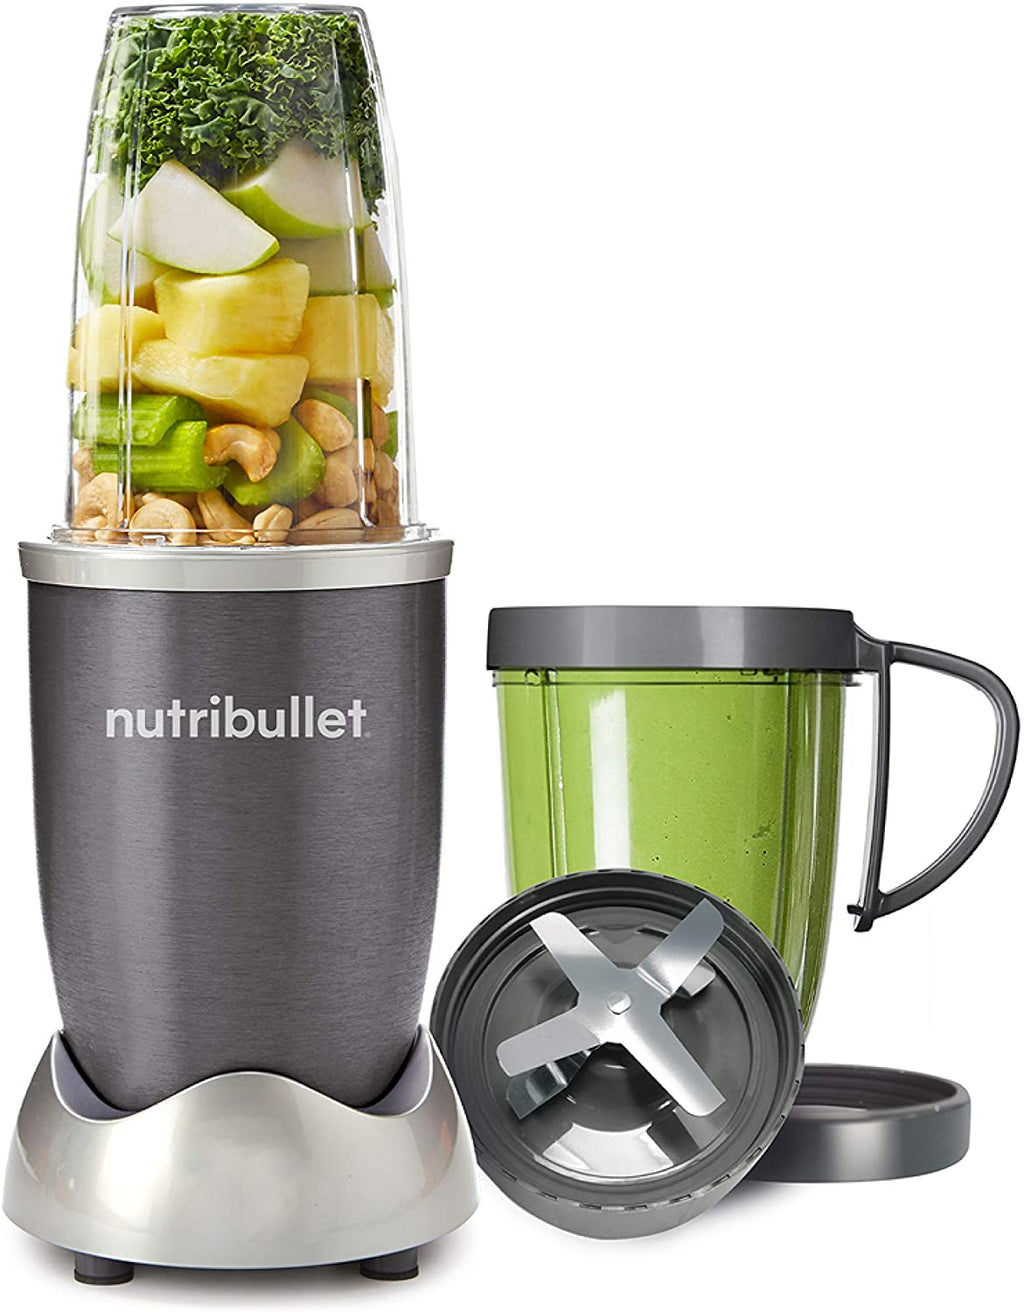 NUTRiBULLET 600 Series - With each Lifestyle Order receive complimentary sports brand products to enhance your workout .